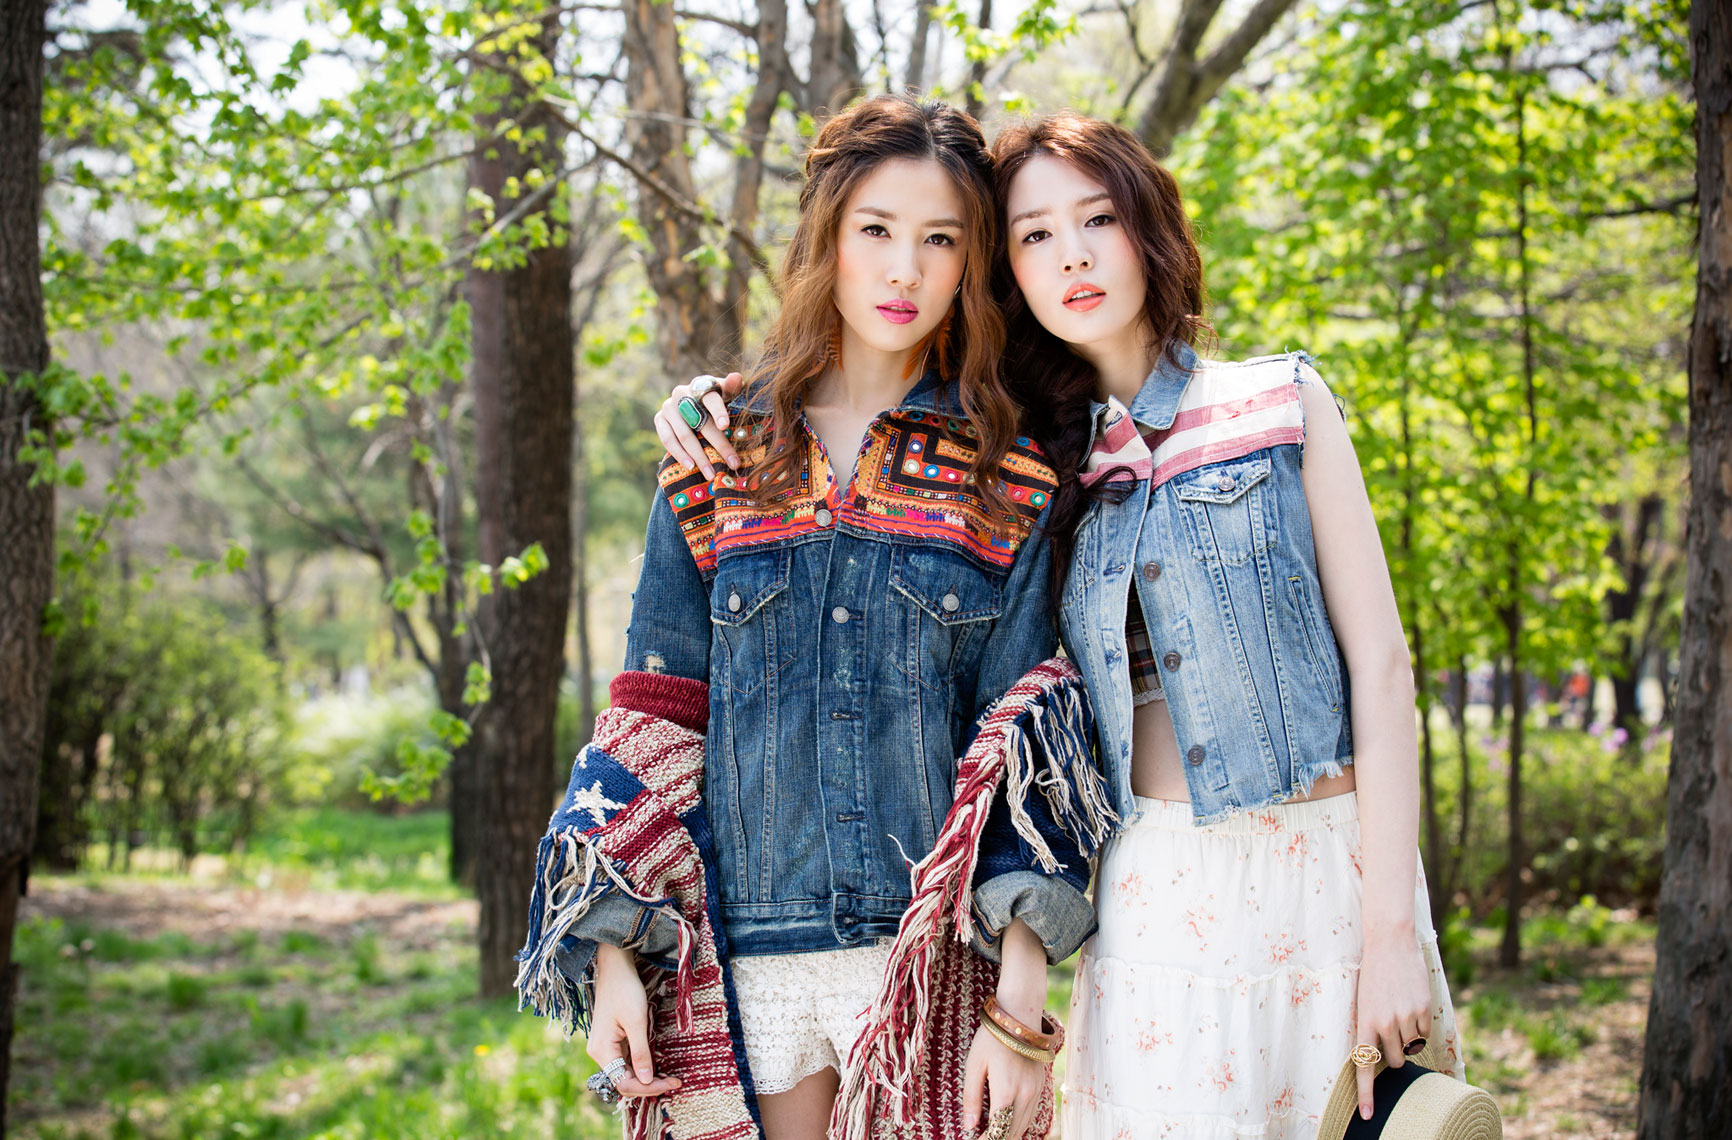 Fashion Editorial Story Photo Shoot with Twin Sisters